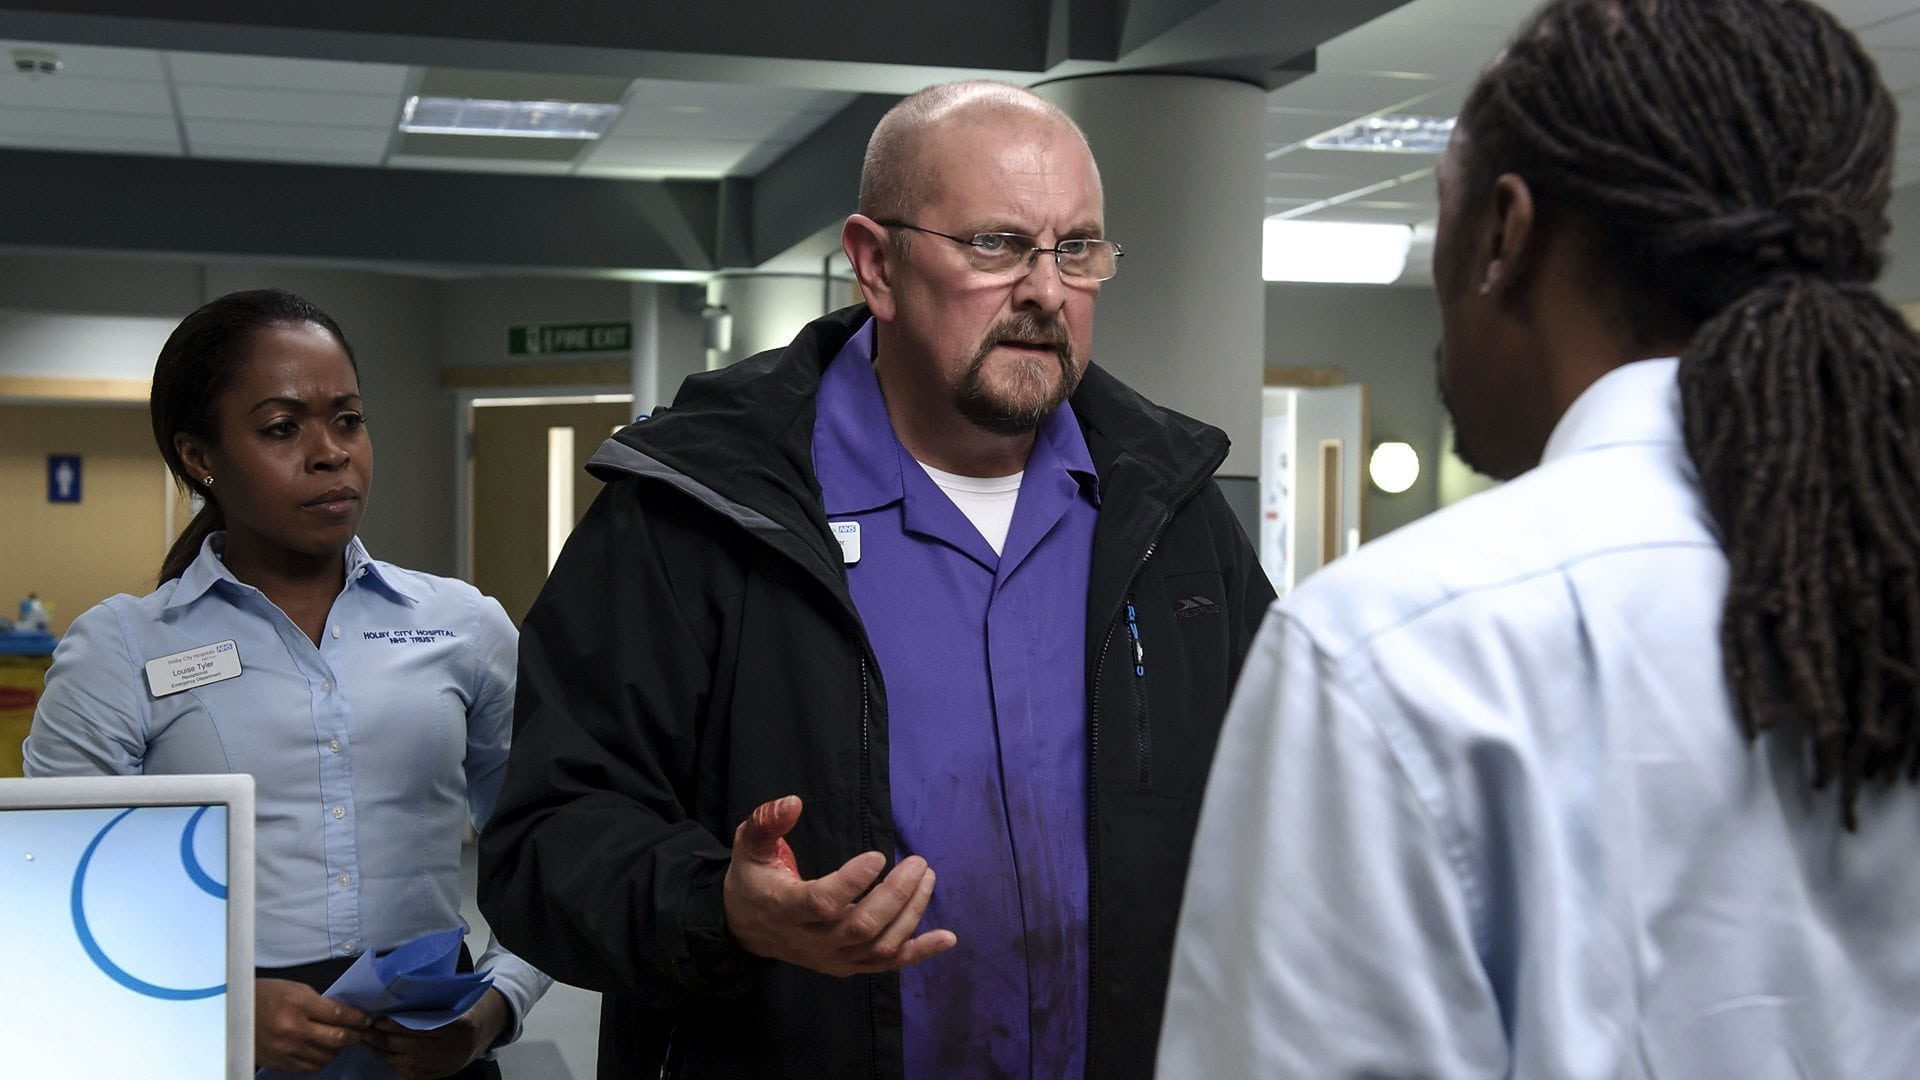 Casualty - Season 29 Episode 19 : What a Difference a Day Makes